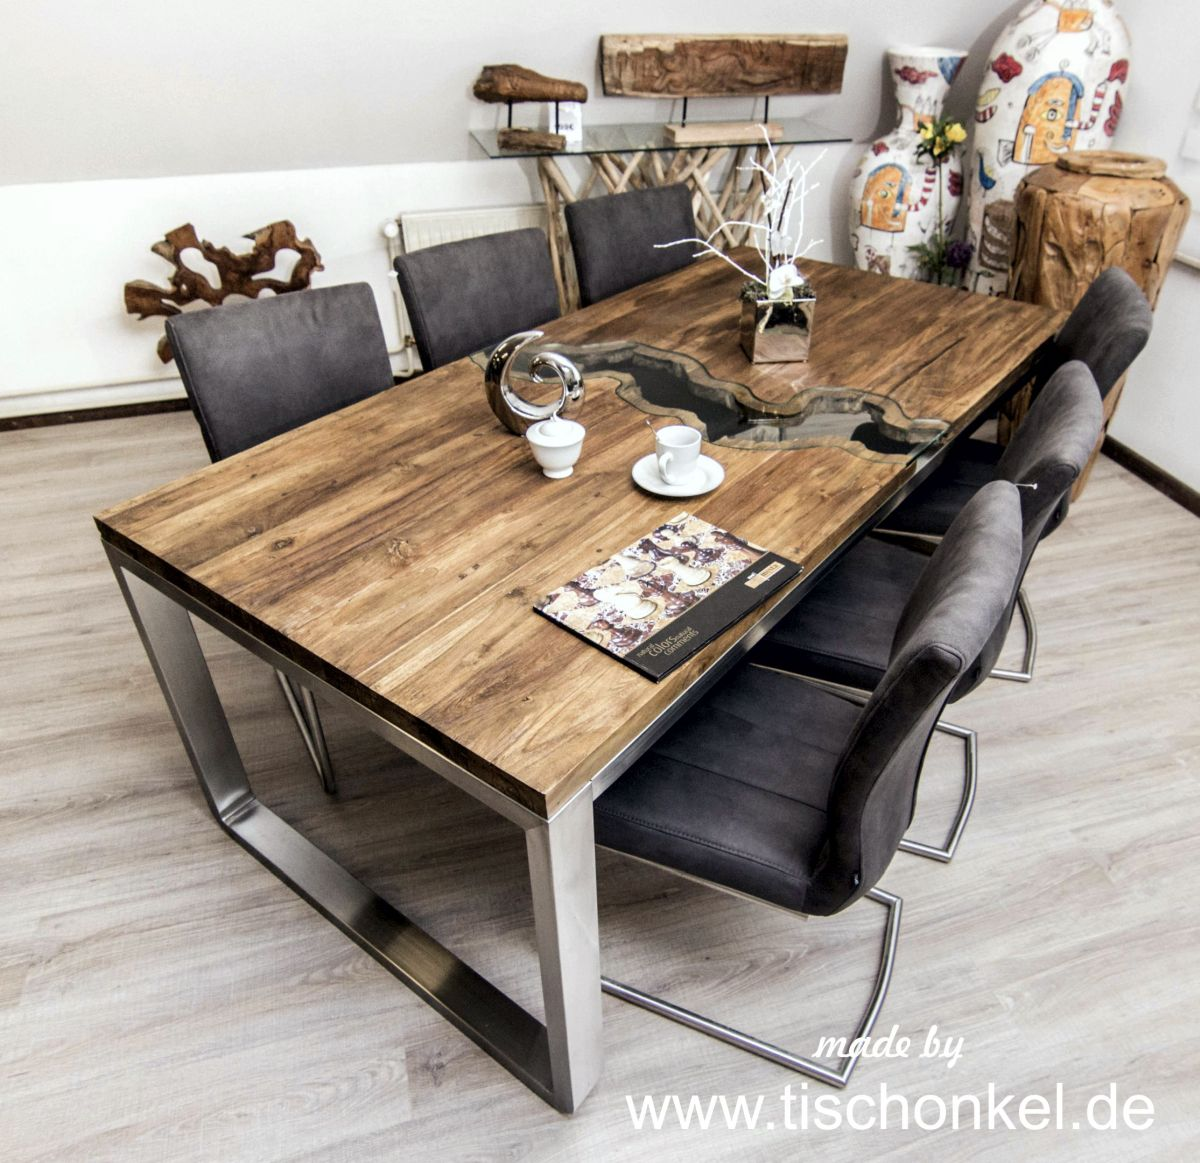 esstische aus altem holz der tischonkel. Black Bedroom Furniture Sets. Home Design Ideas